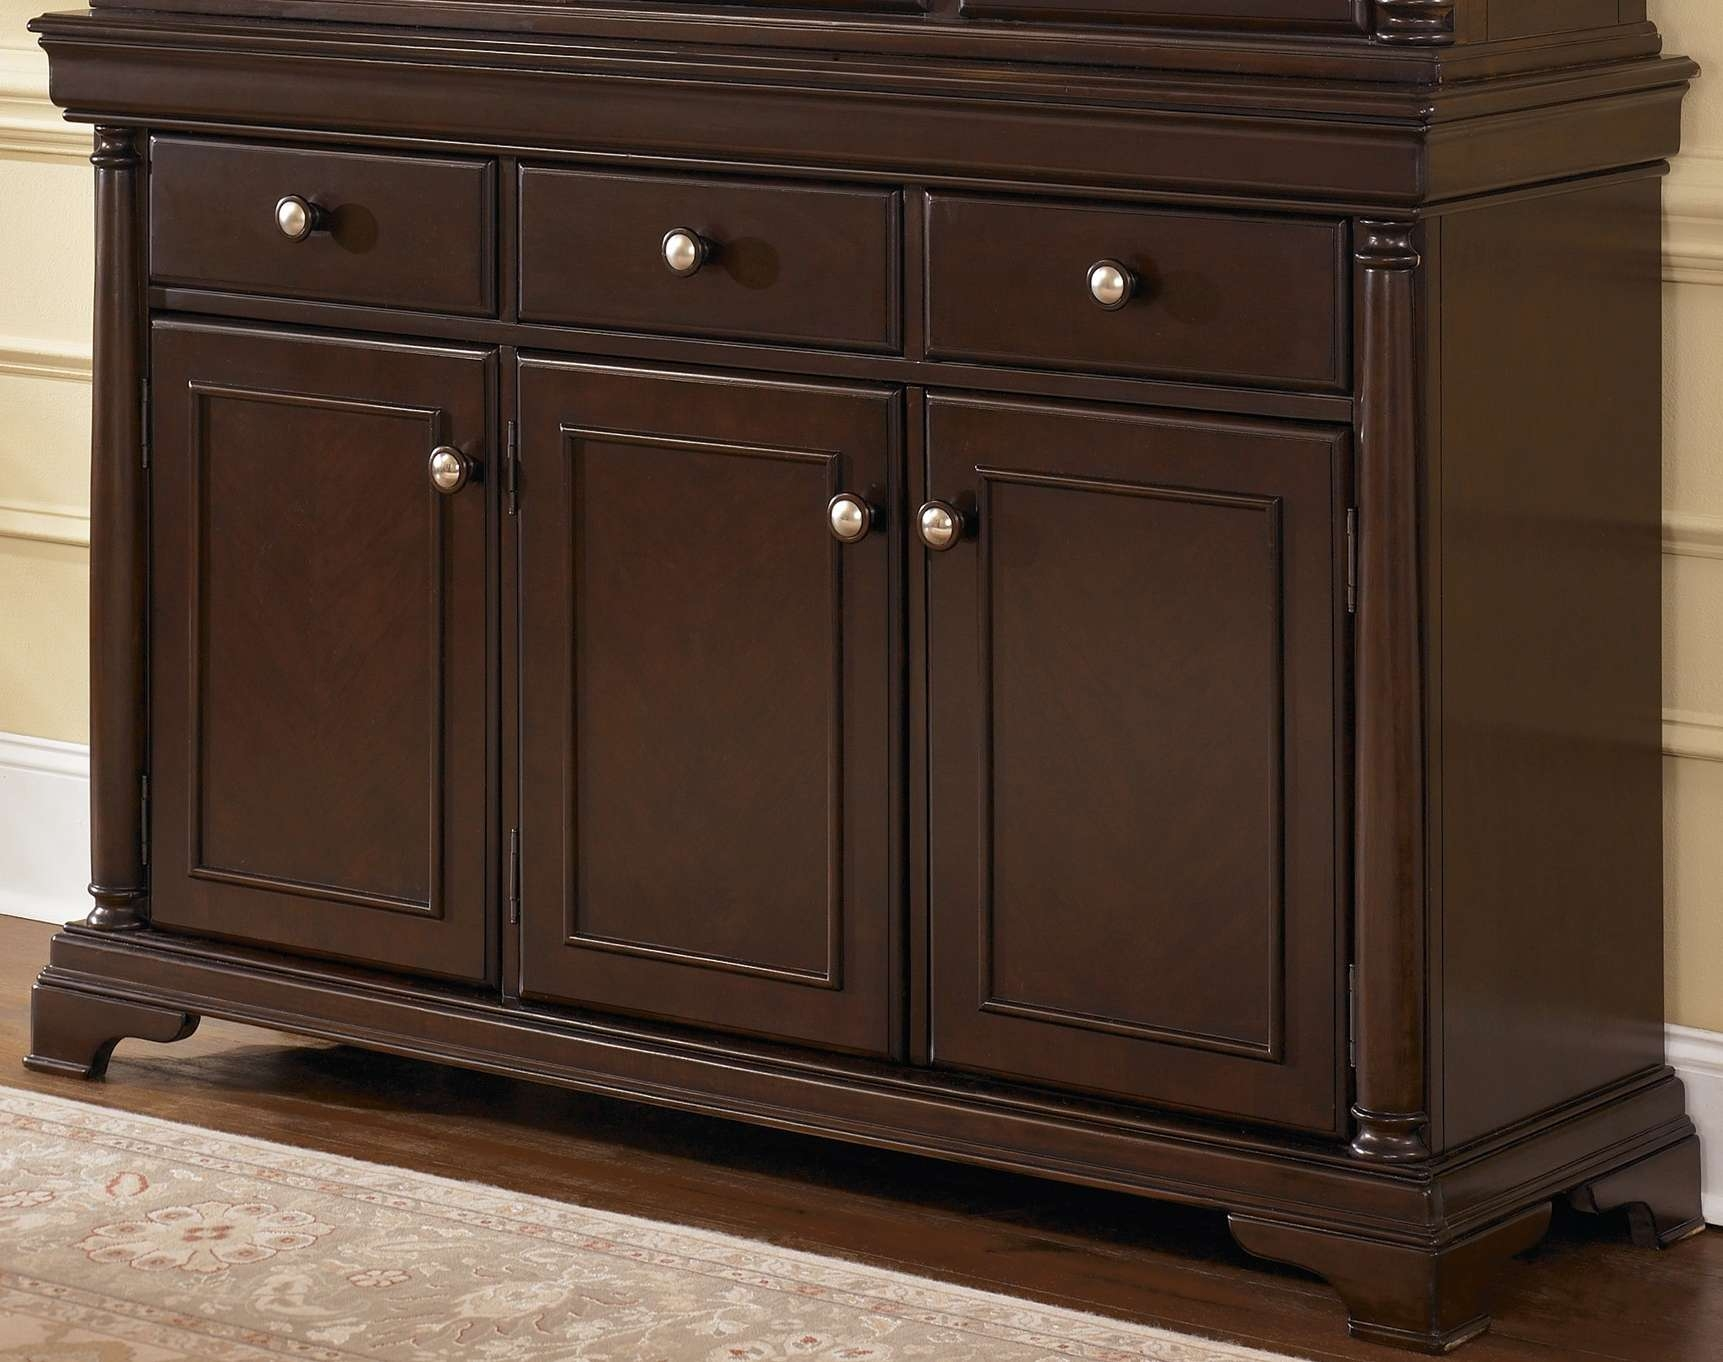 Dining Room Credenza Ideas Including Buffet Cabinet Pictures Within Sideboards Buffet Furniture (View 8 of 20)